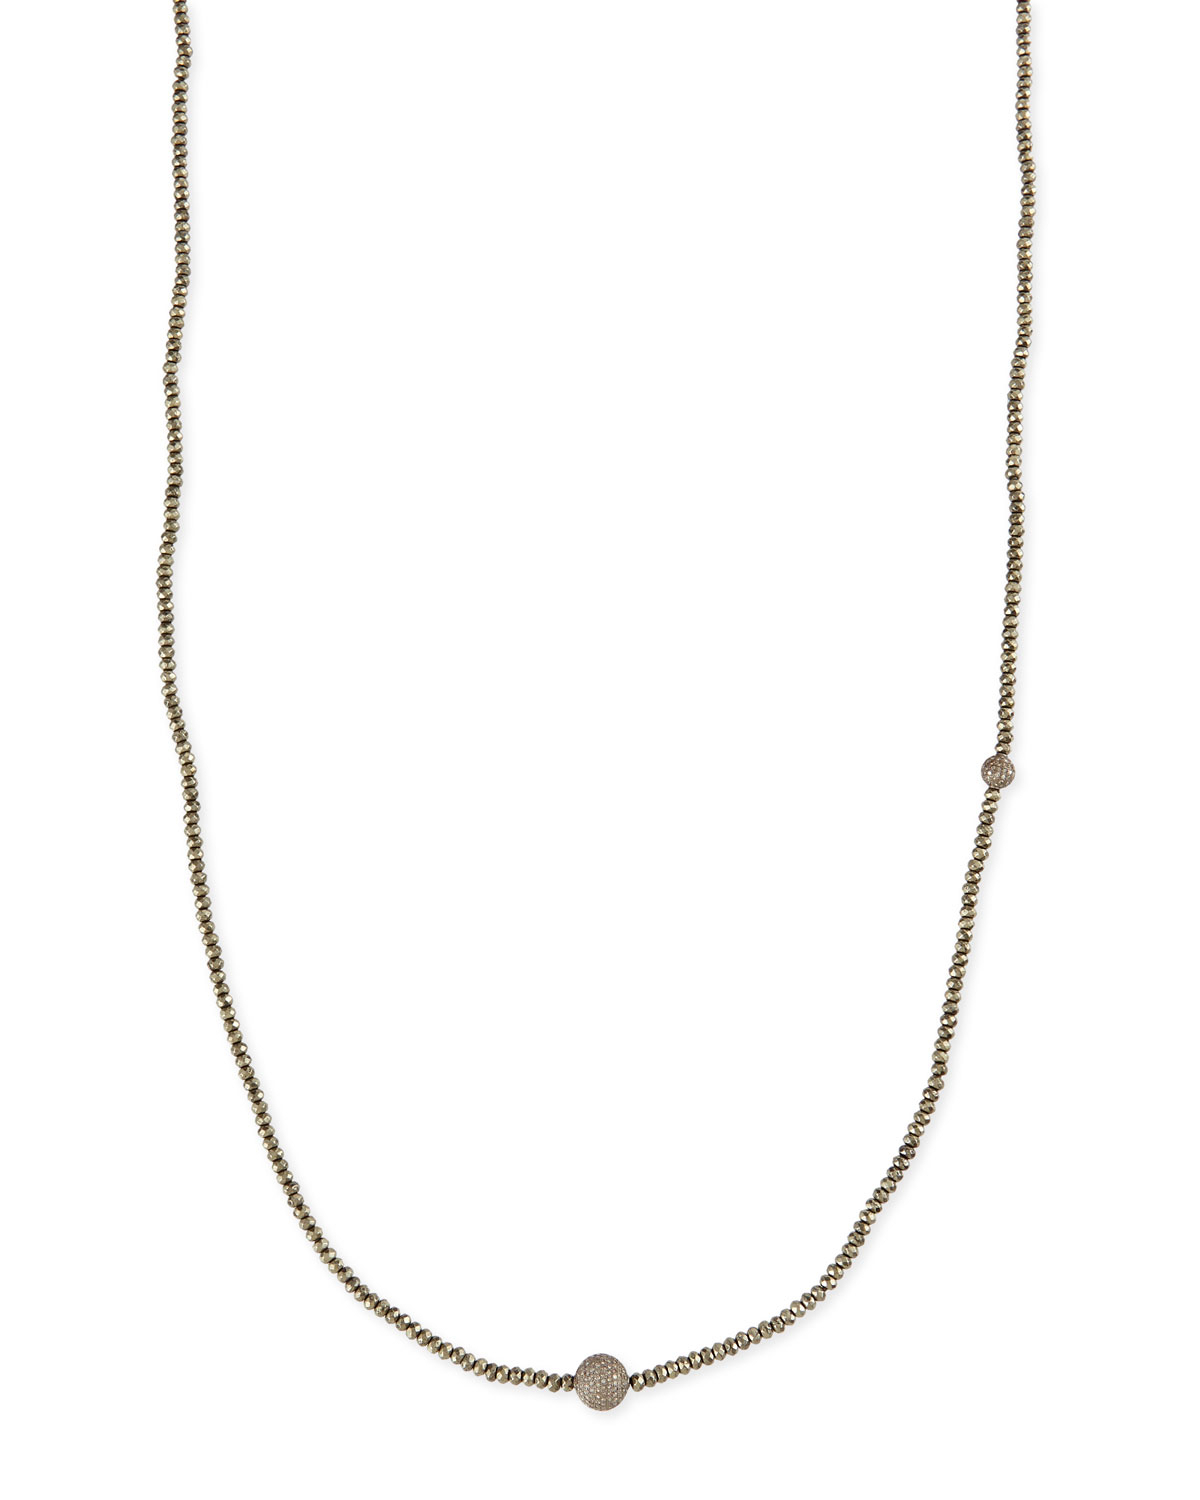 Sheryl Lowe Faceted Pyrite Necklace With Pave Diamond Beads In Intended For Most Current Beads & Pavé Necklaces (Gallery 20 of 25)